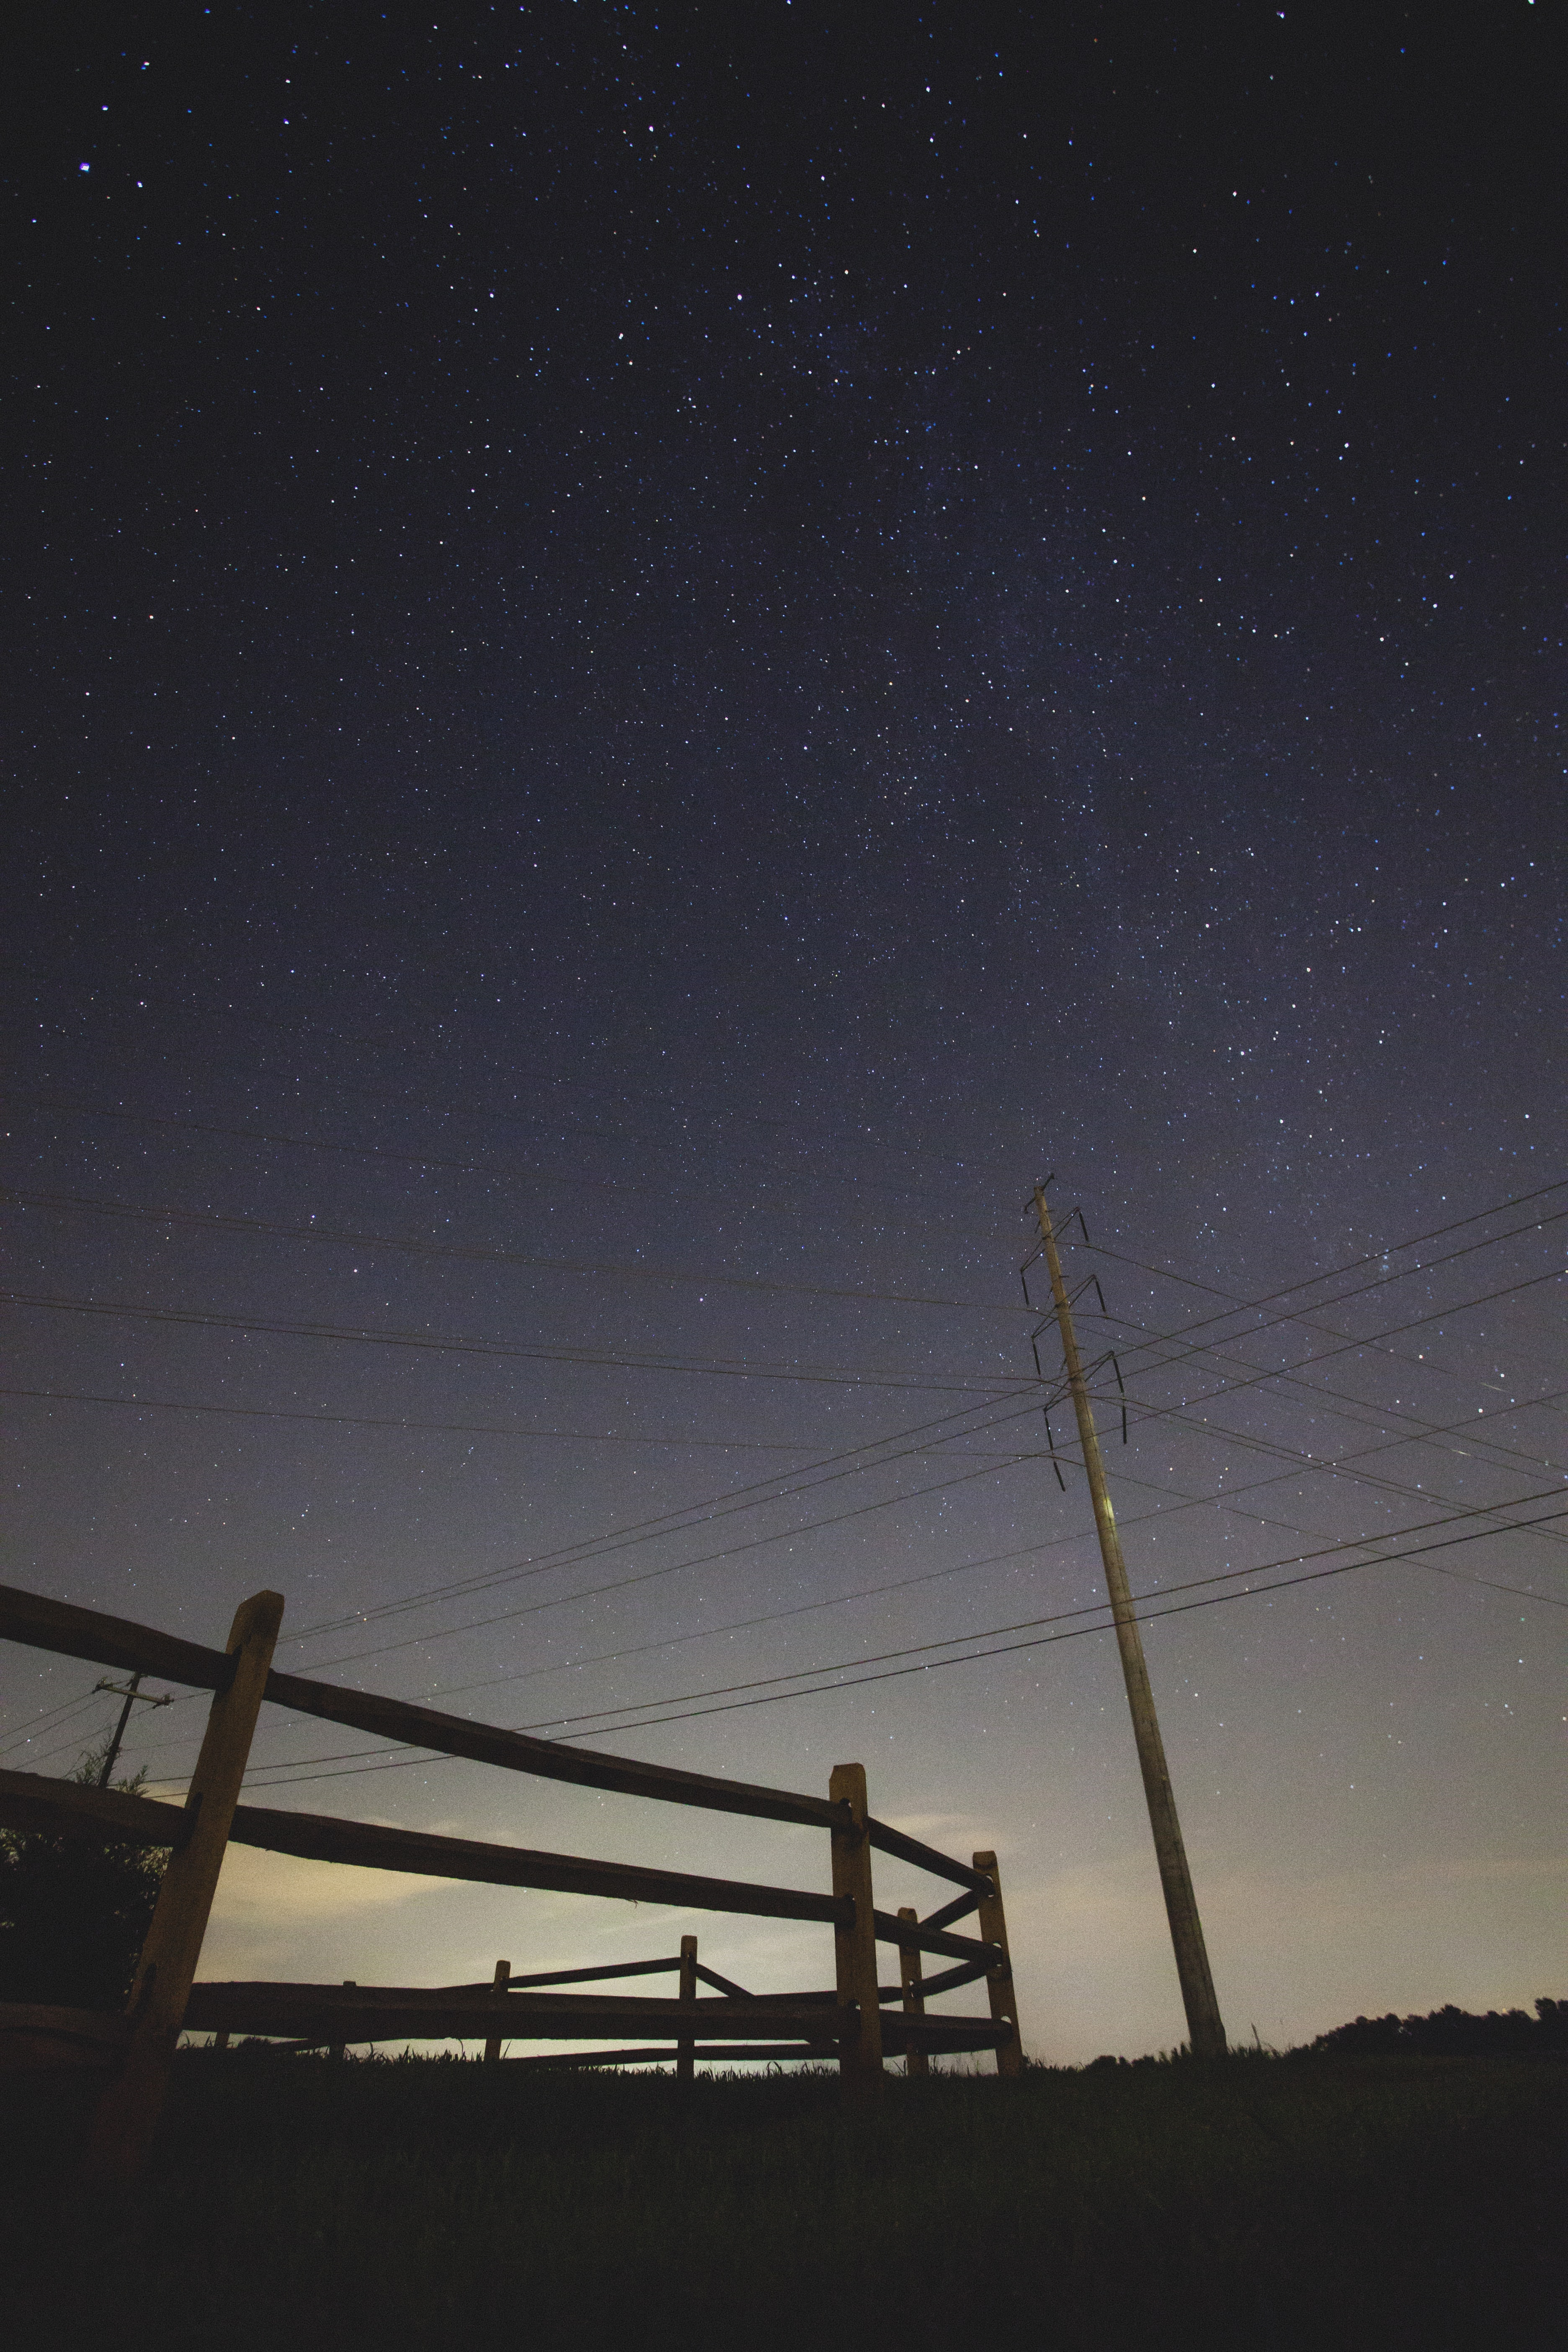 brown wooden fence and electrical post under stary skies